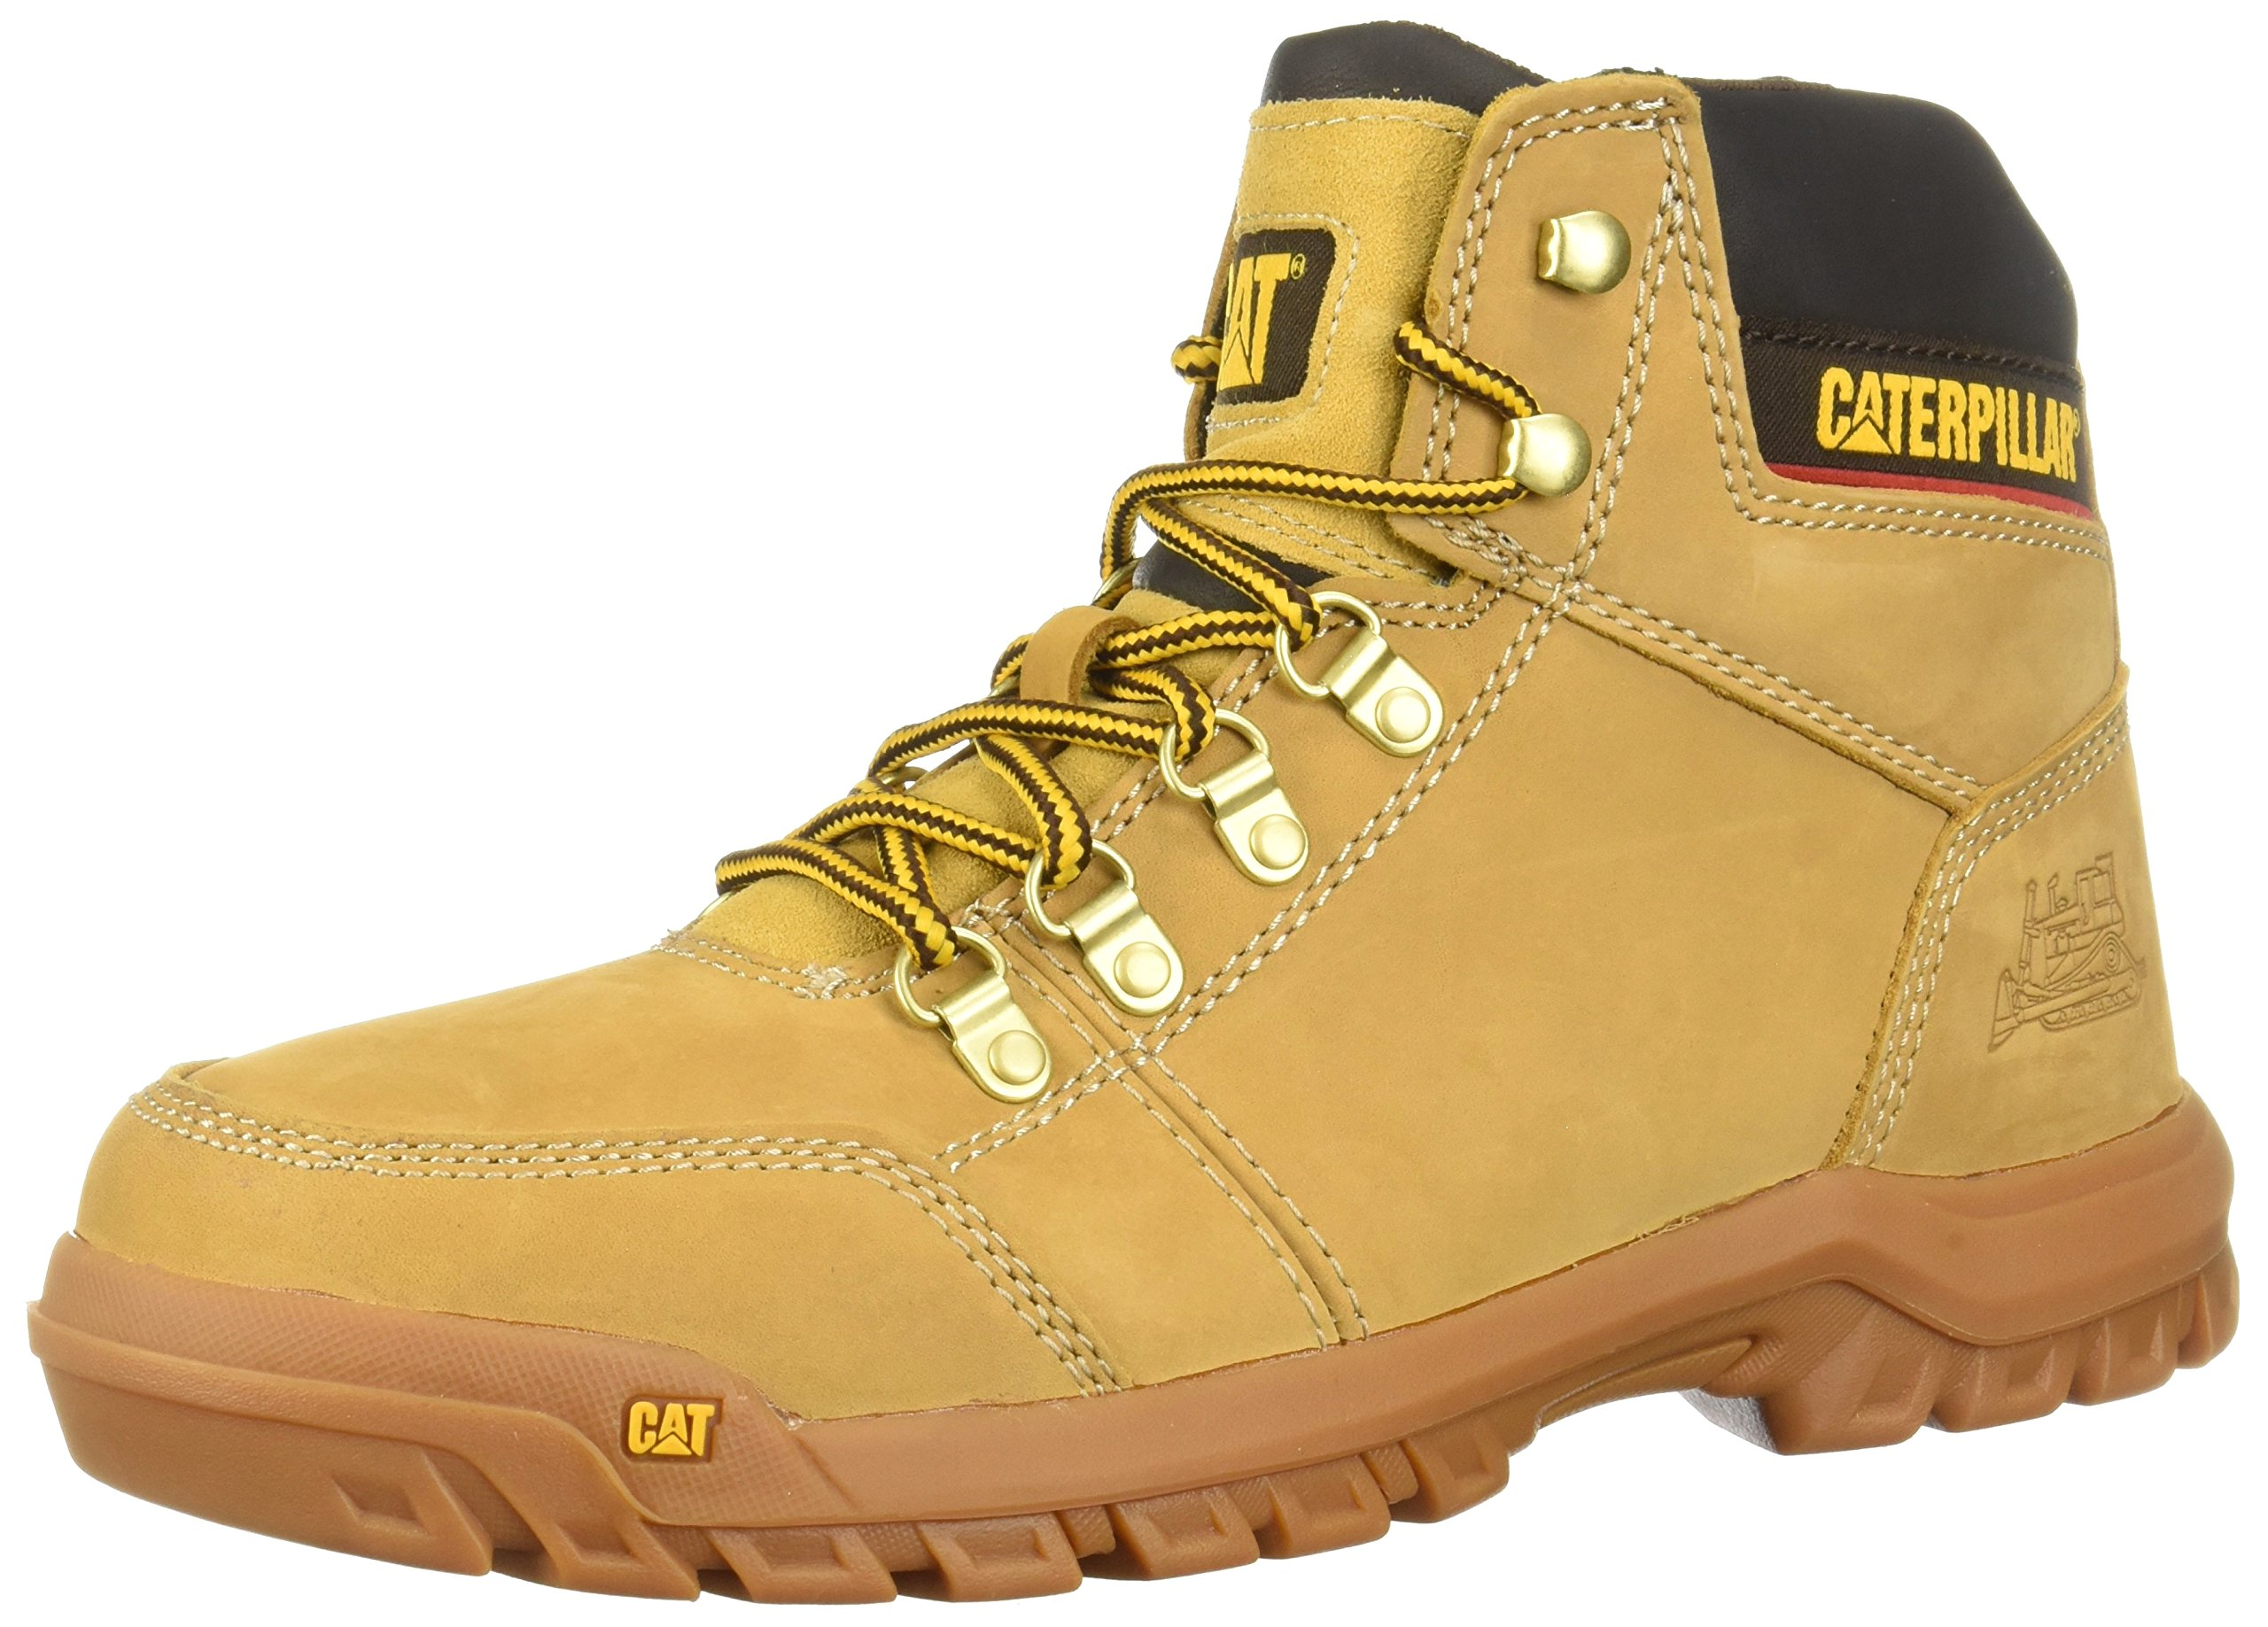 Caterpillar Men's Outline Construction Boot